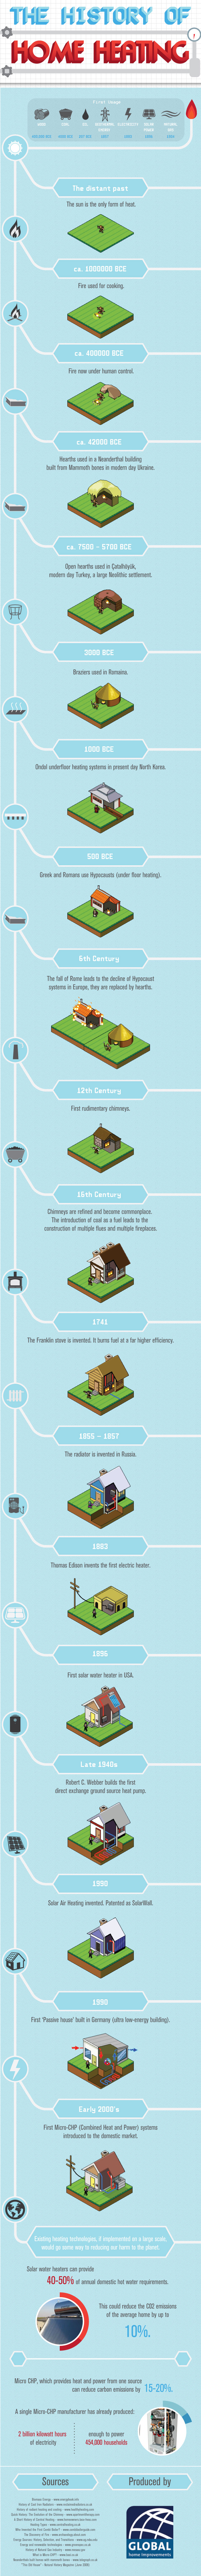 history-of-home-heating